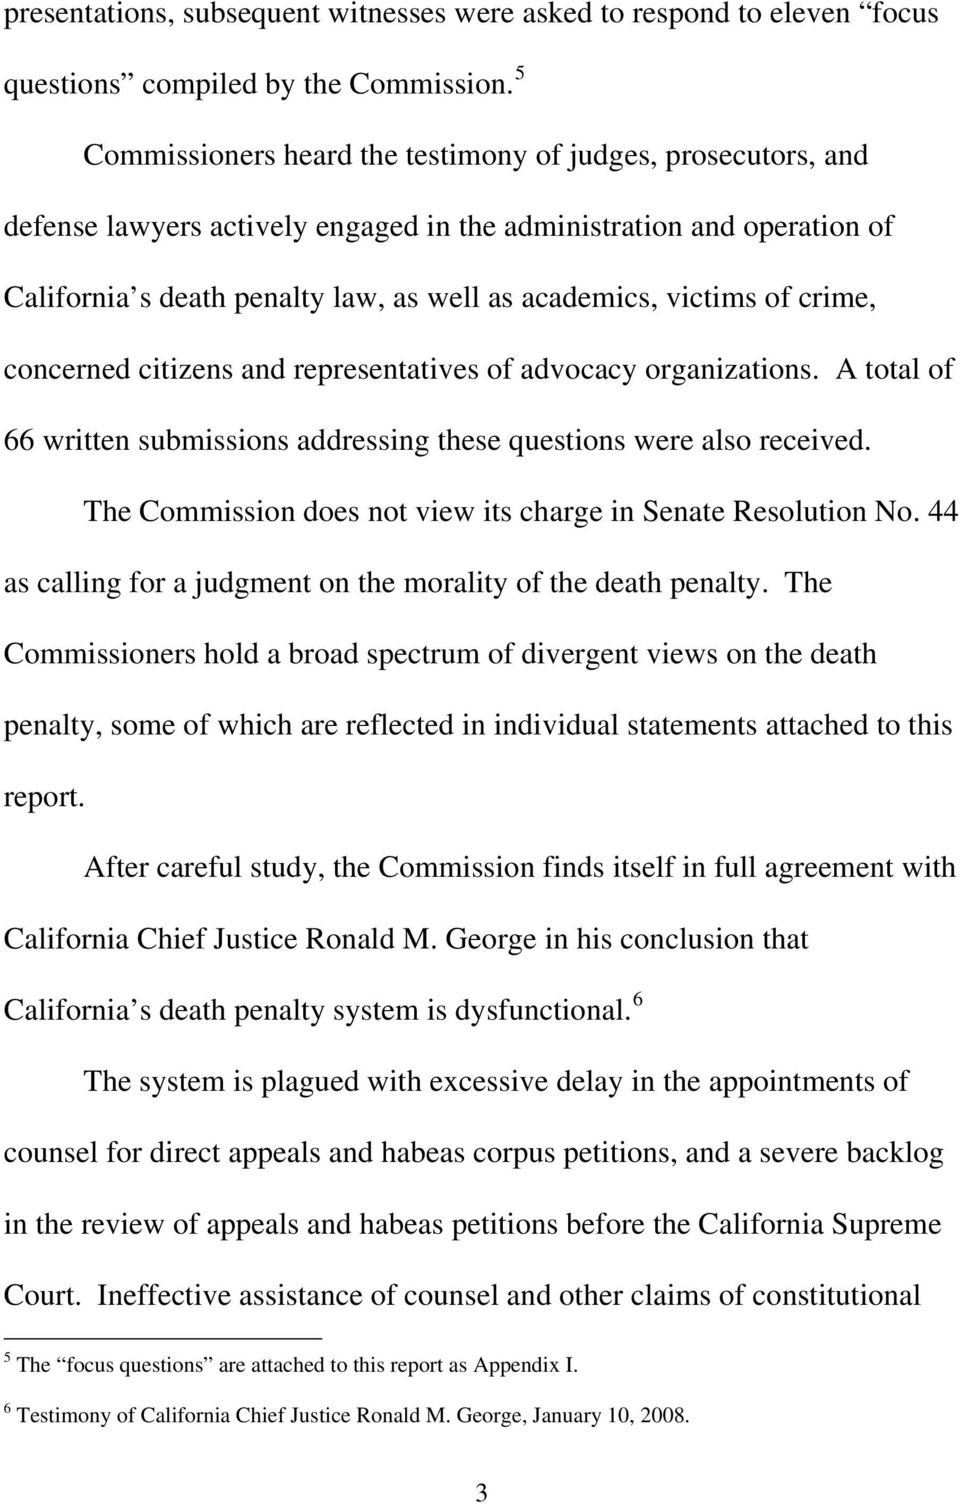 of crime, concerned citizens and representatives of advocacy organizations. A total of 66 written submissions addressing these questions were also received.